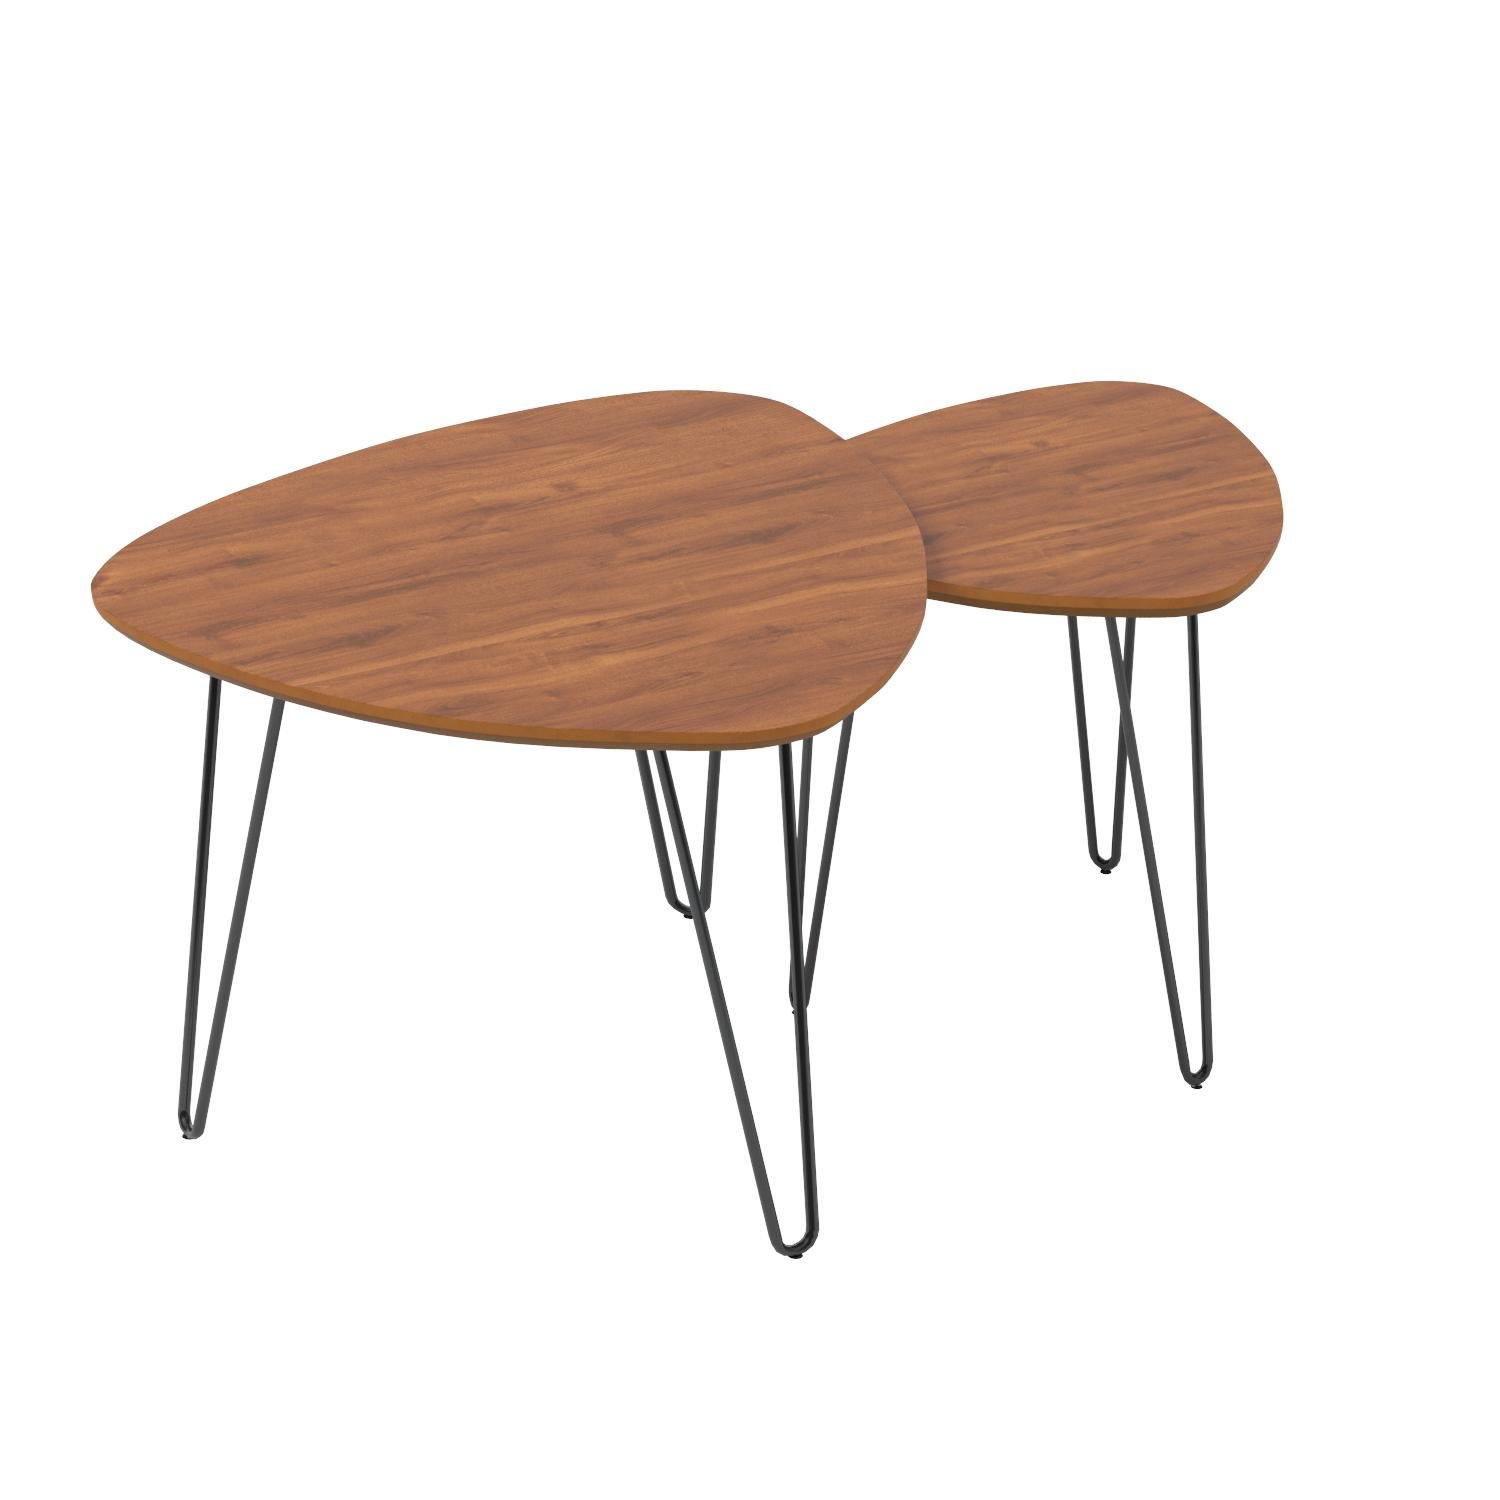 WE Furniture Hairpin Leg Wood Nesting Coffee Table Set - Walnut by WE Furniture (Image #6)